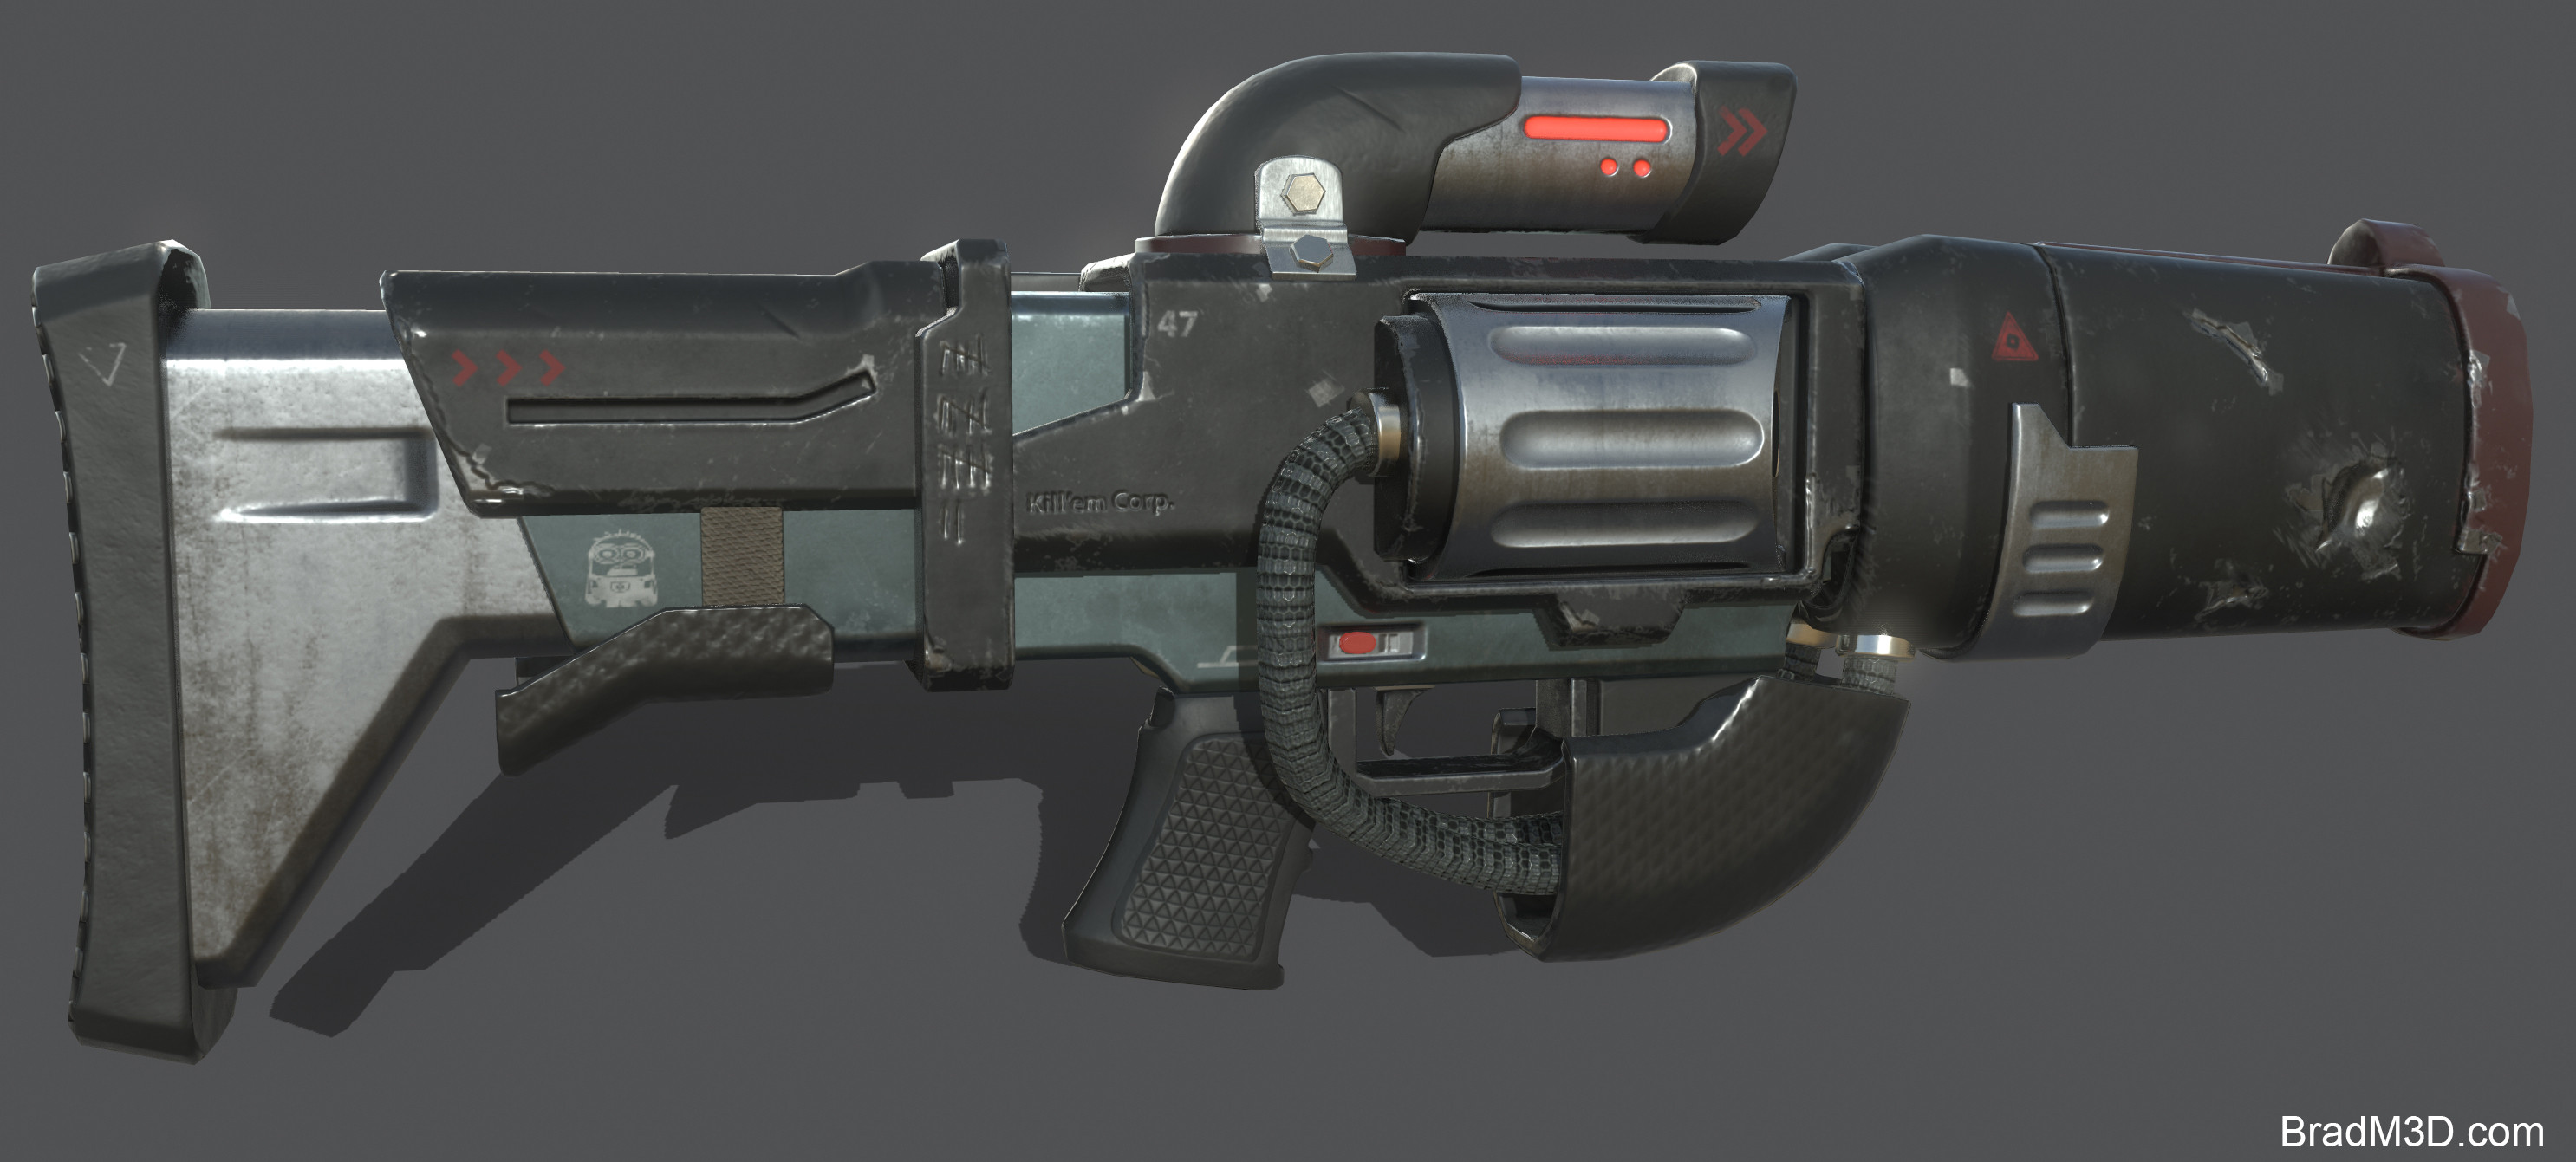 Marmoset: Screen Grab Gun_01 (Totally concepted by me).